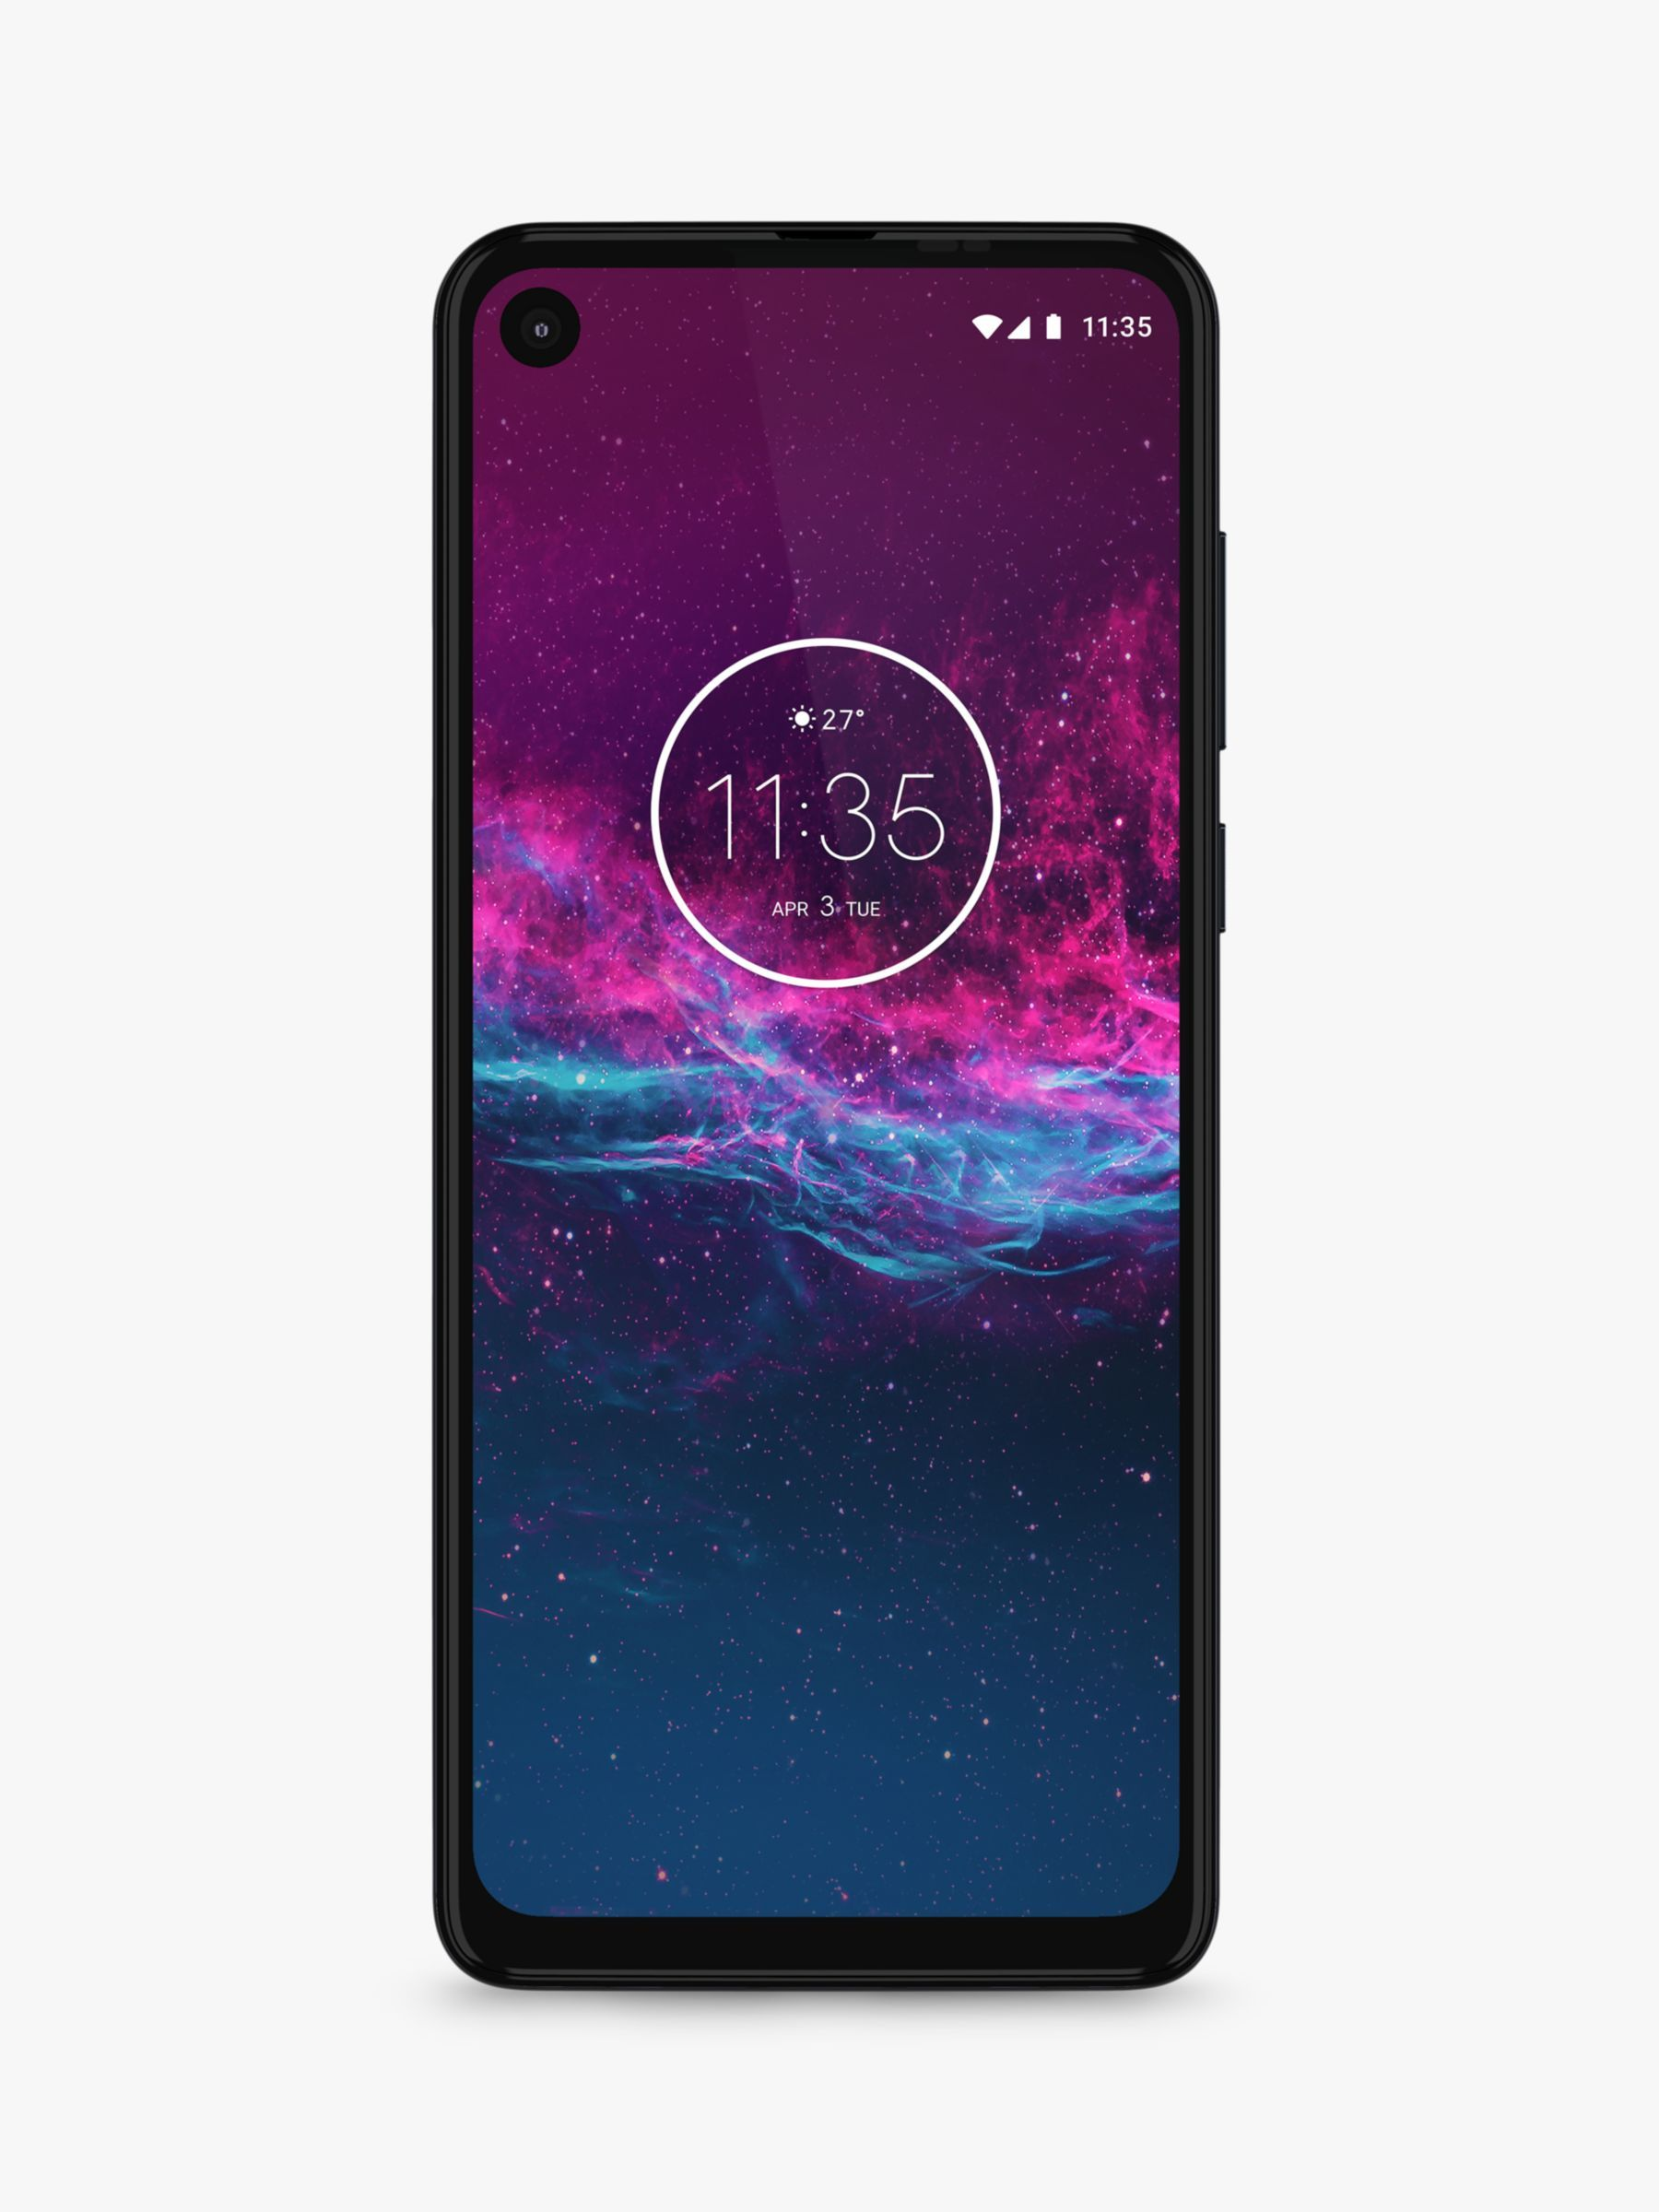 Motorola One Action Sim Free Smartphone Android 6 3 4g Lte